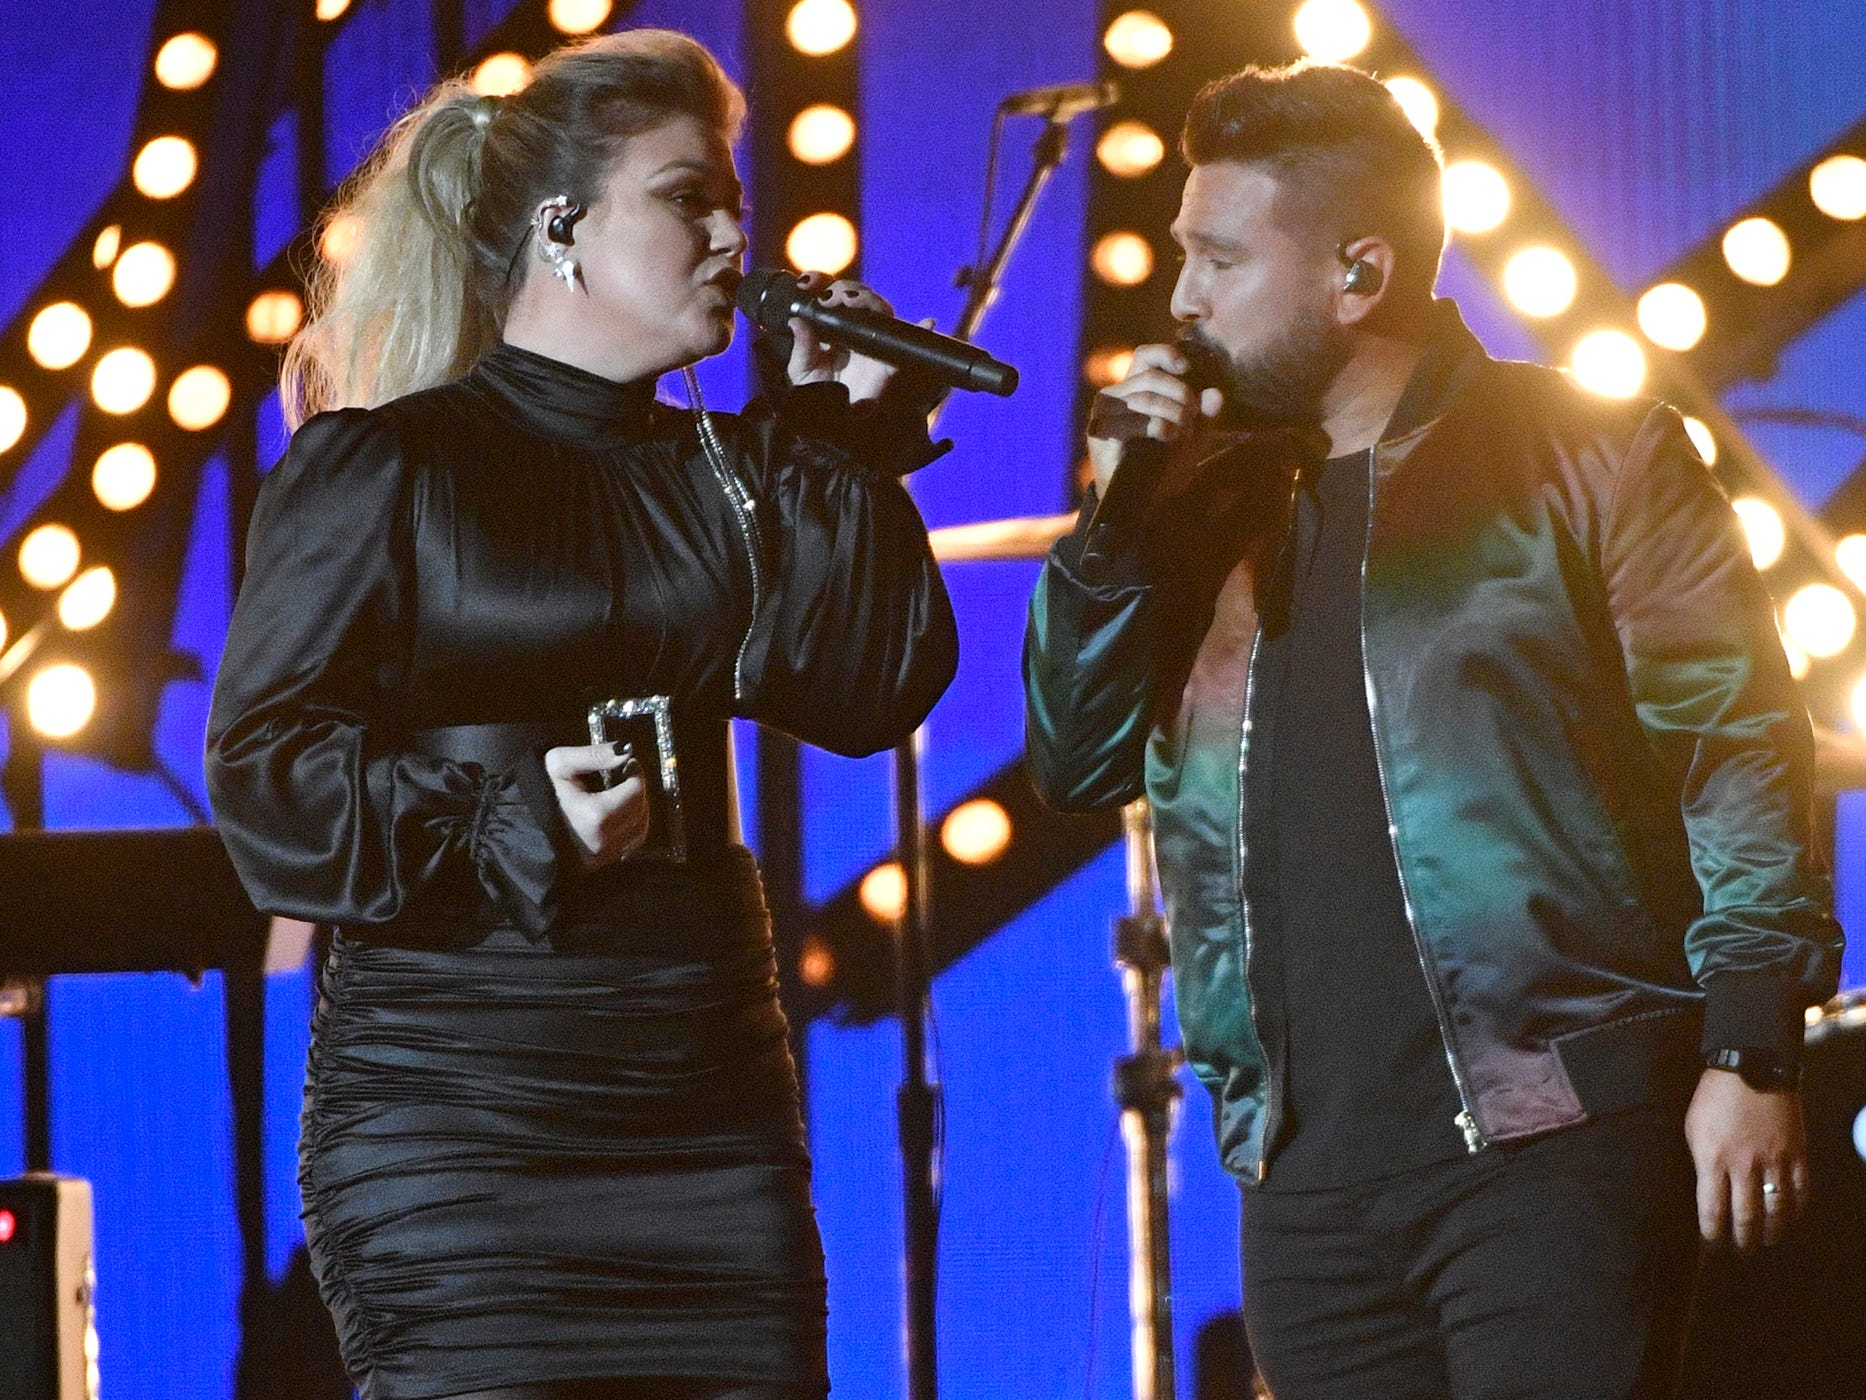 Kelly Clarkson, left, and Shay Mooney of Dan + Shay, perform during the 54TH Academy of Country Music Awards Sunday, April 7, 2019, in Las Vegas, Nev.